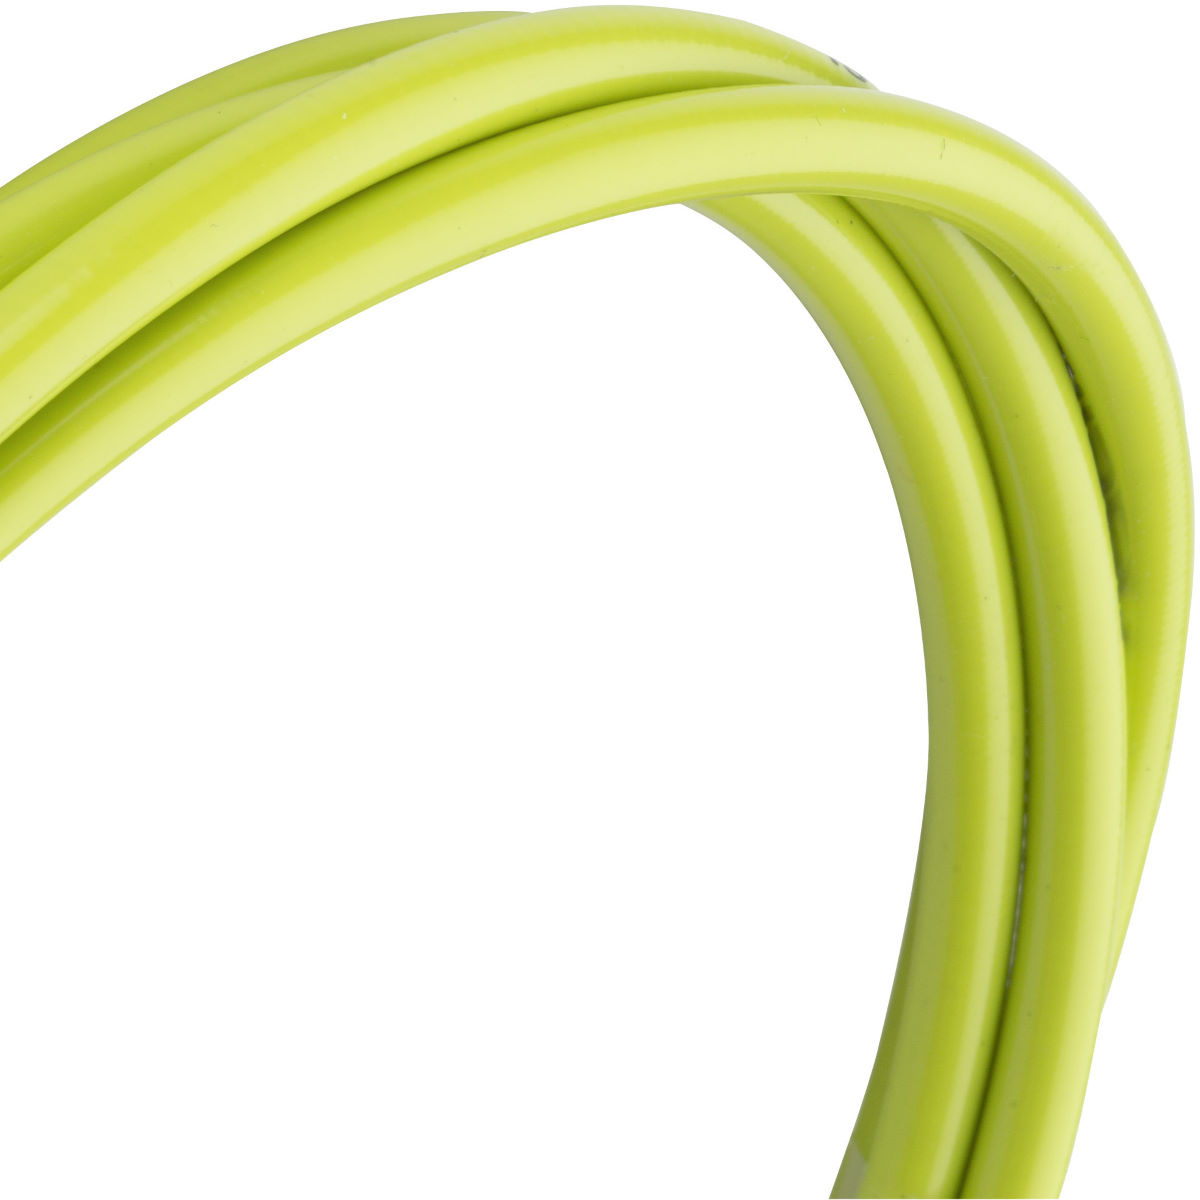 Jagwire Pro Hydraulic Hose - One Size Green  Brake Cables